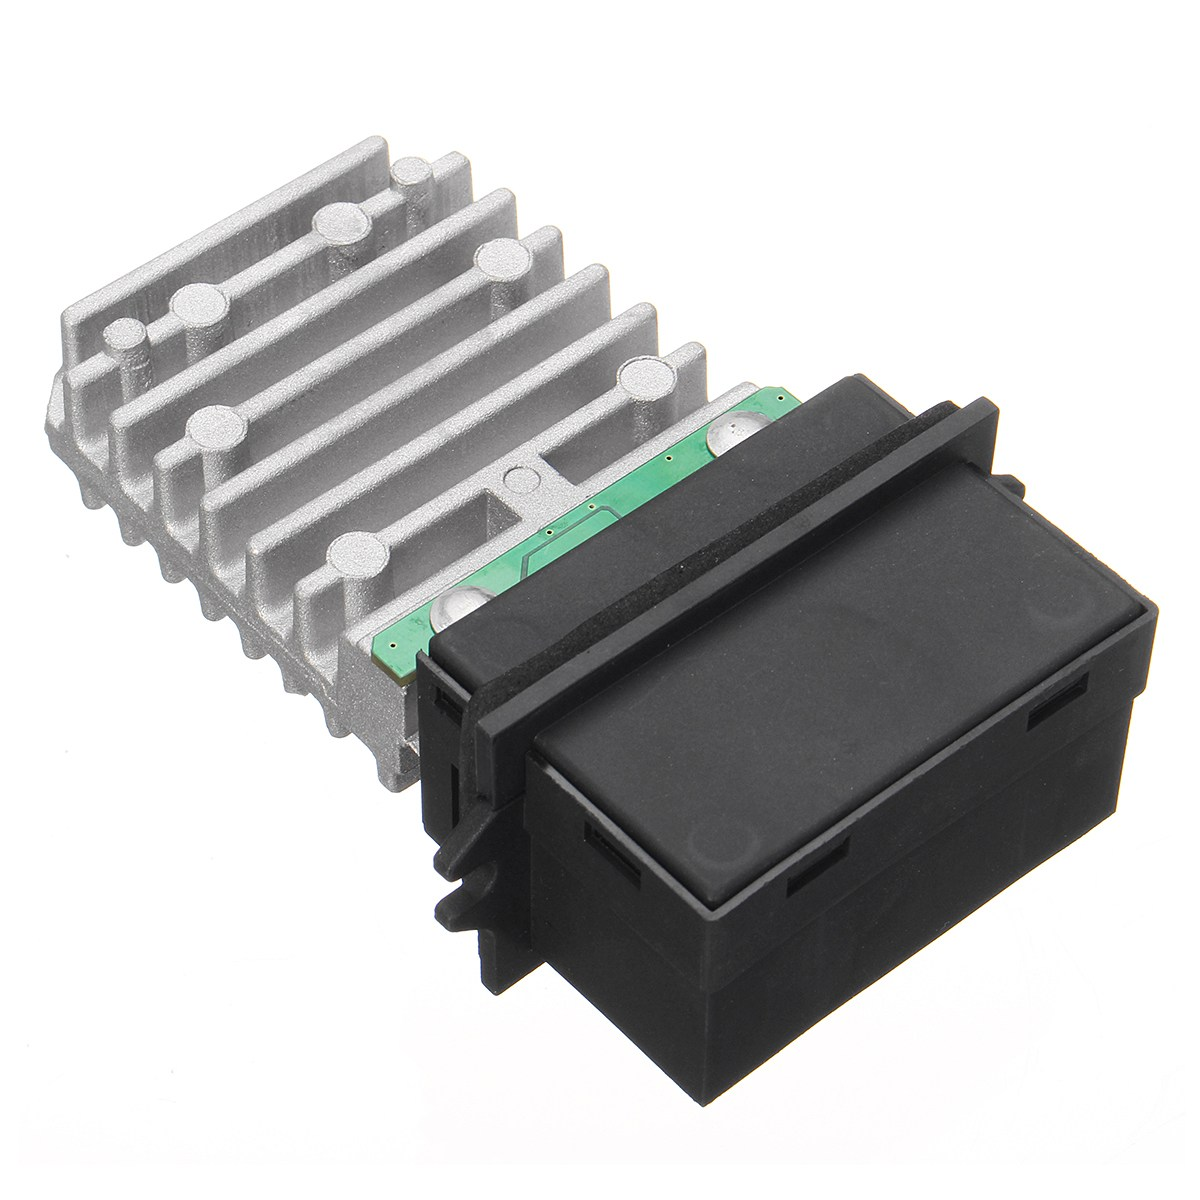 hight resolution of blower motor resistor power control module for chrysler 300m lhs for dodge intrepid oem 04734913ac 04734913ad 04734913ae